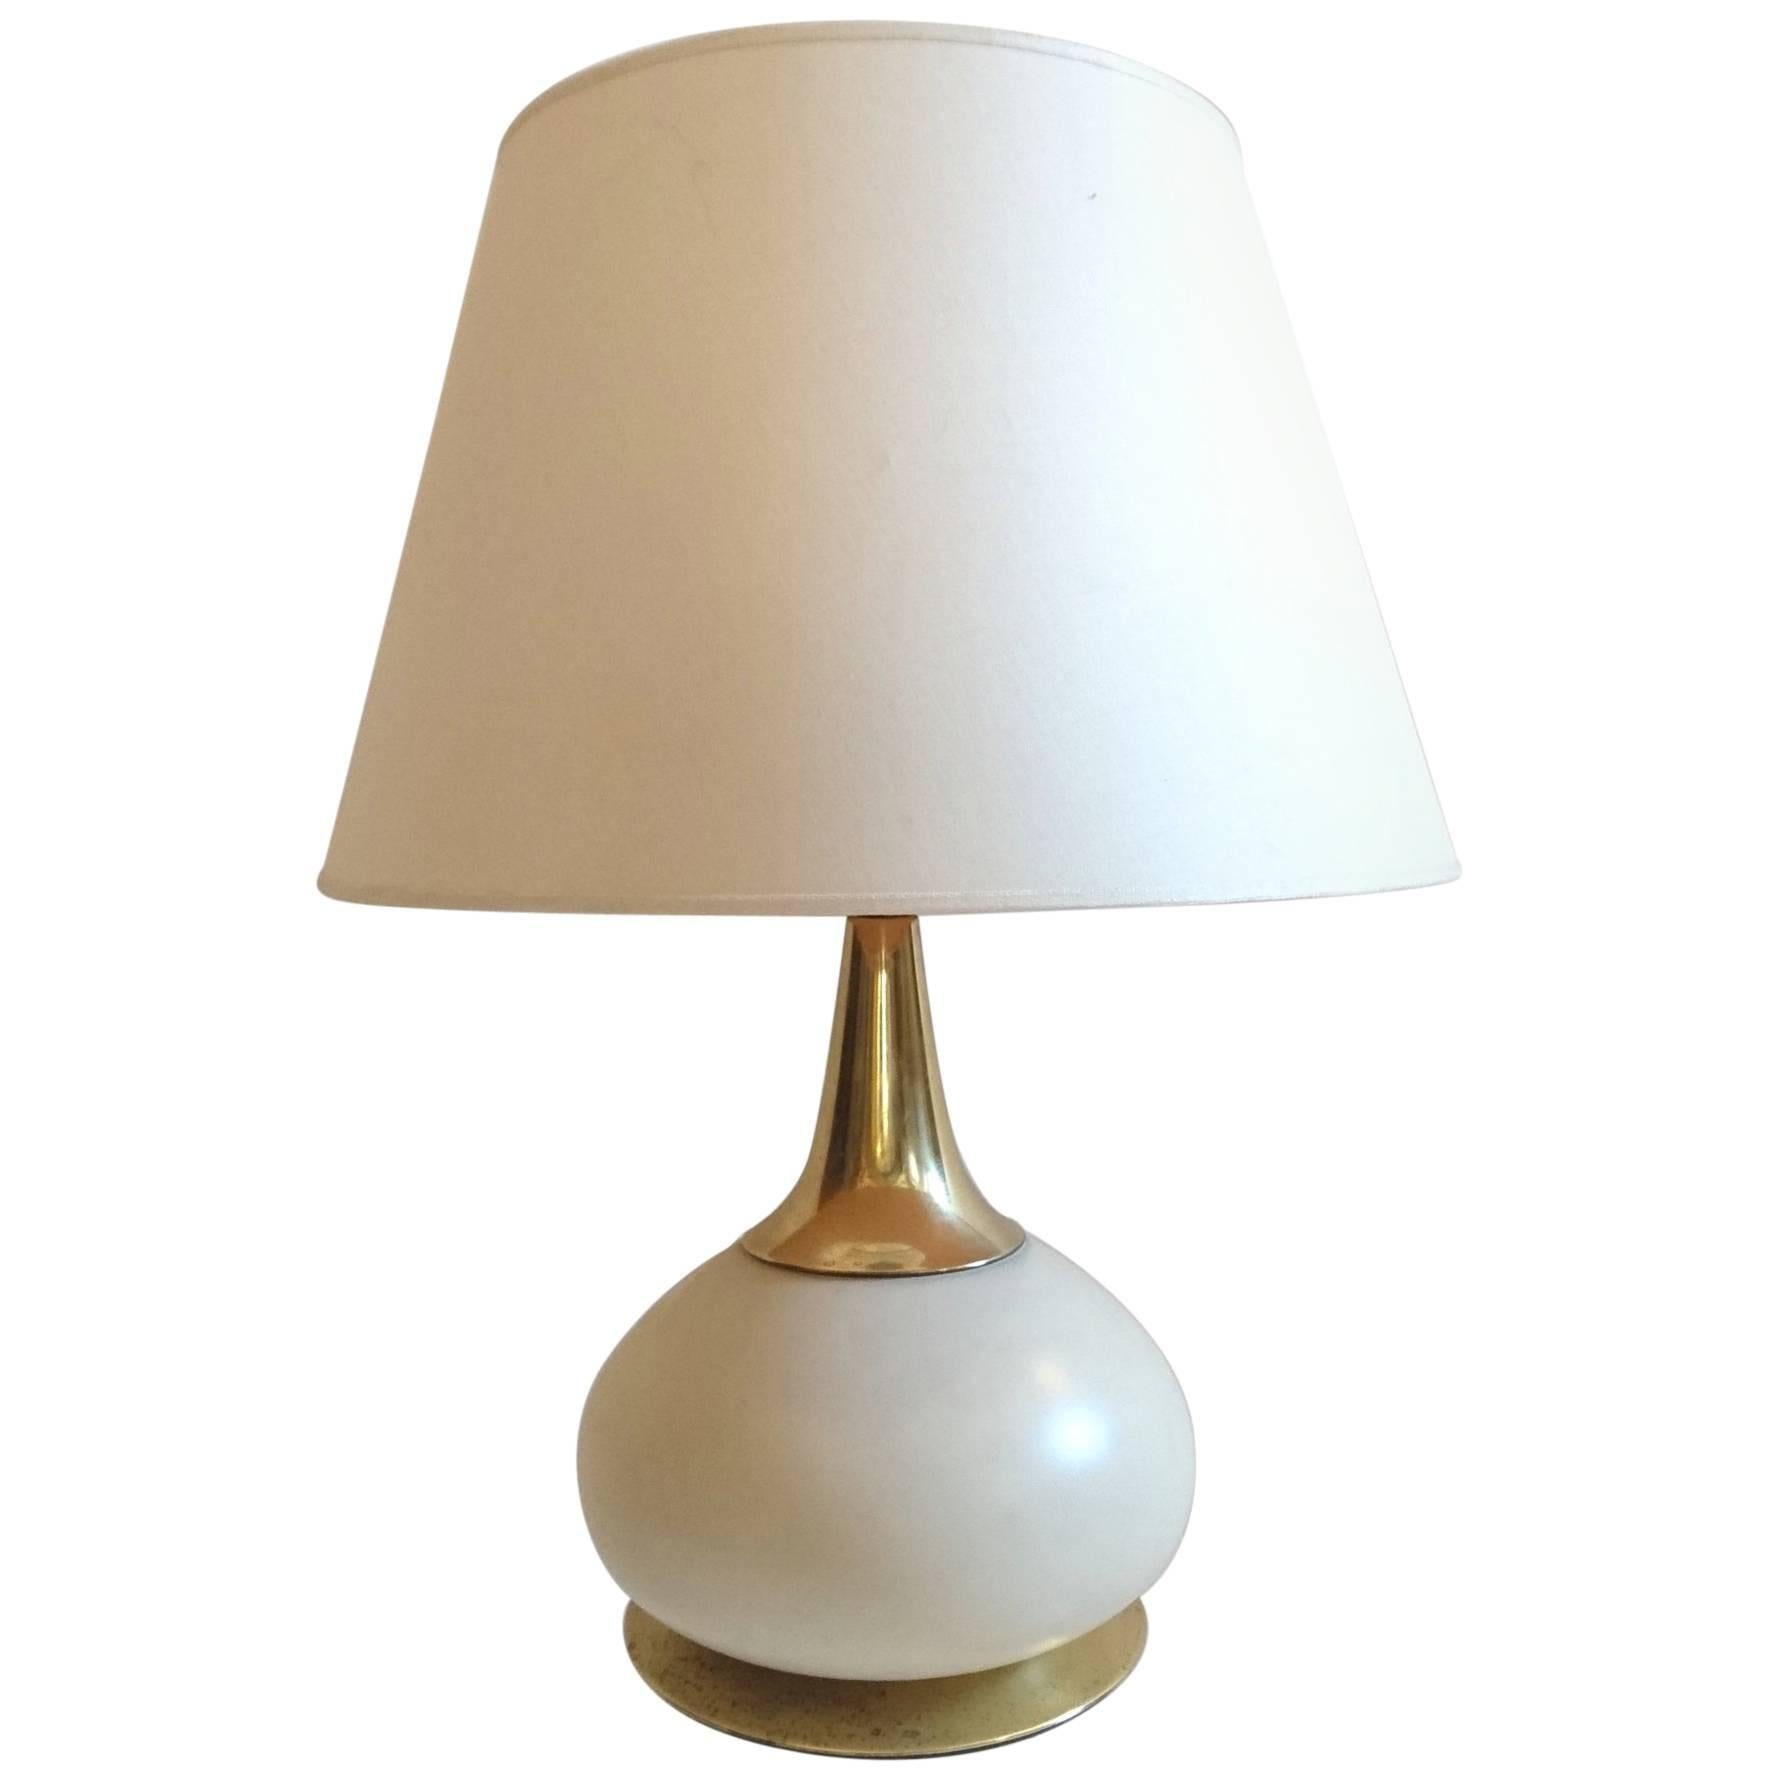 090e3074f16 Large 1970´s Table Lamp by PAF Italy For Sale at 1stdibs